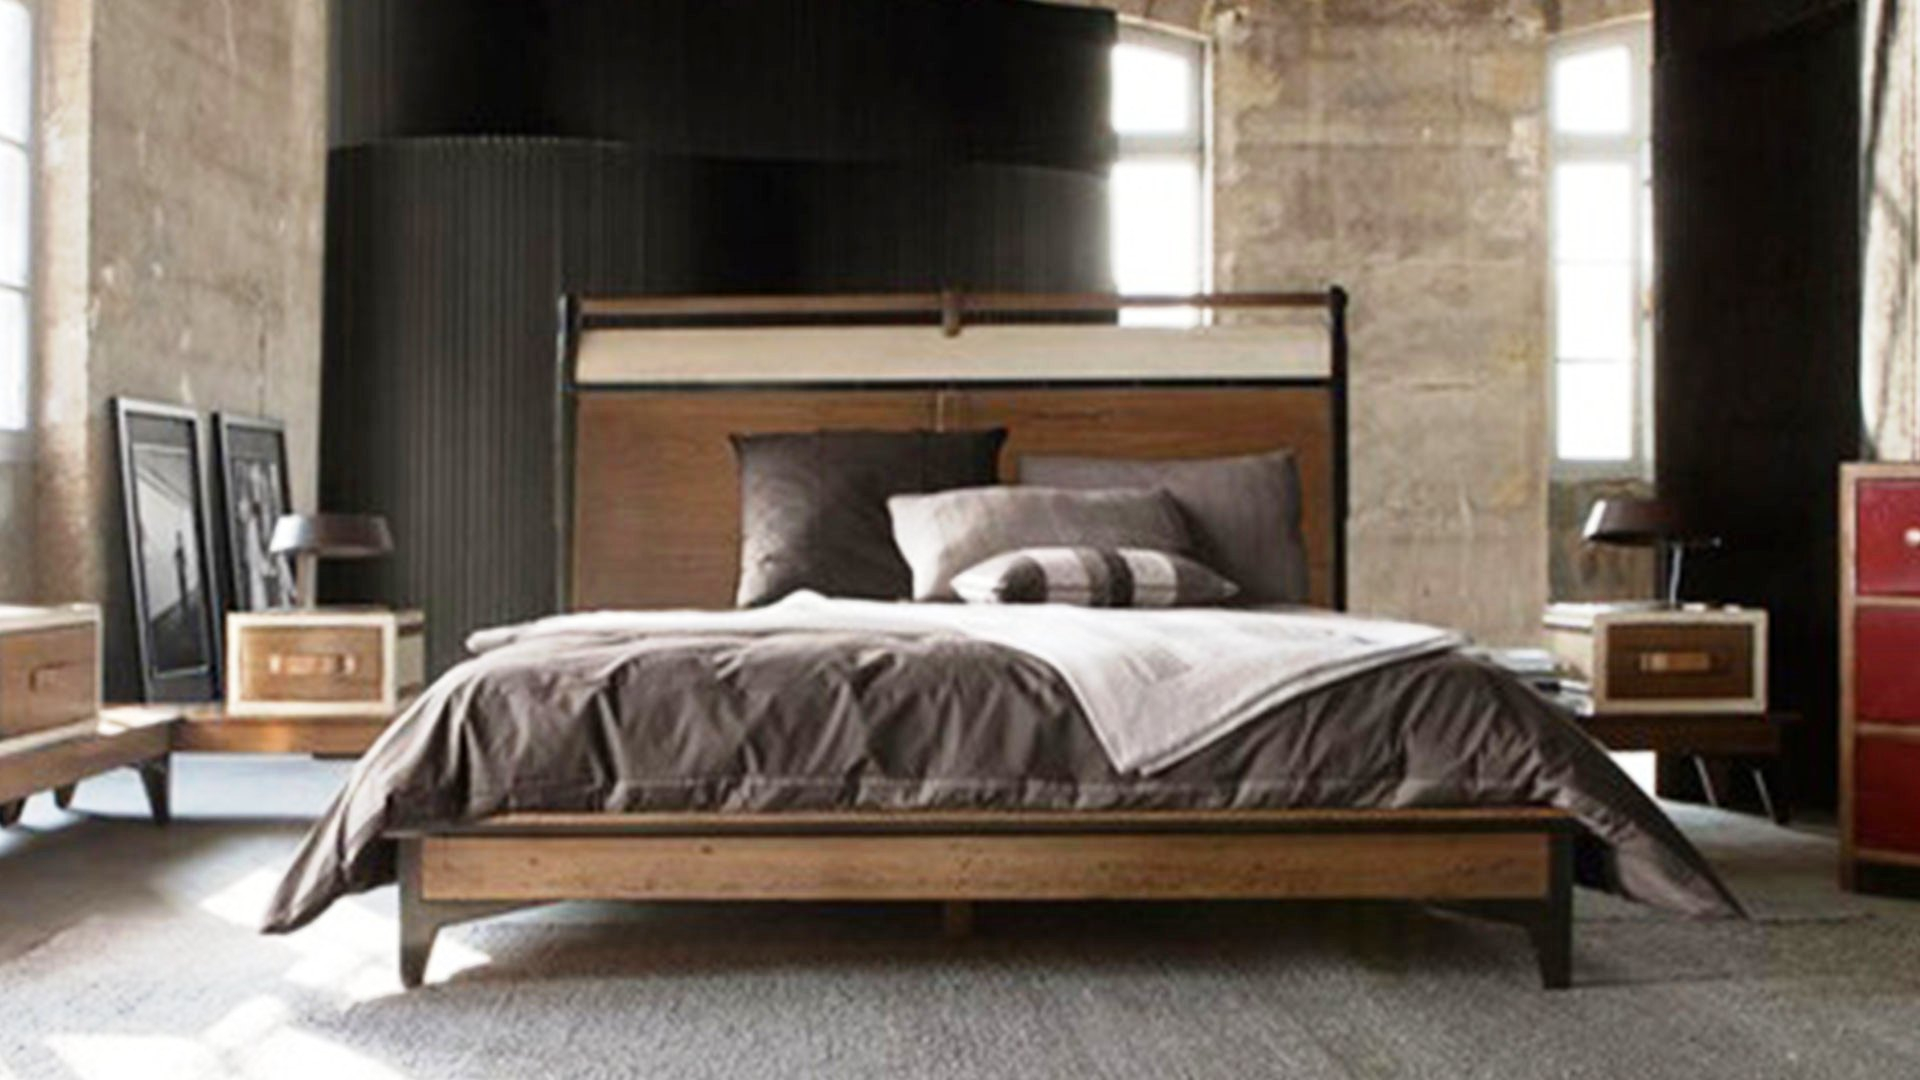 Bedroom Design Mens Wall Decor Masculine Single Men Designs Mens intended for 10 Genius Ideas How to Make Modern Masculine Bedroom